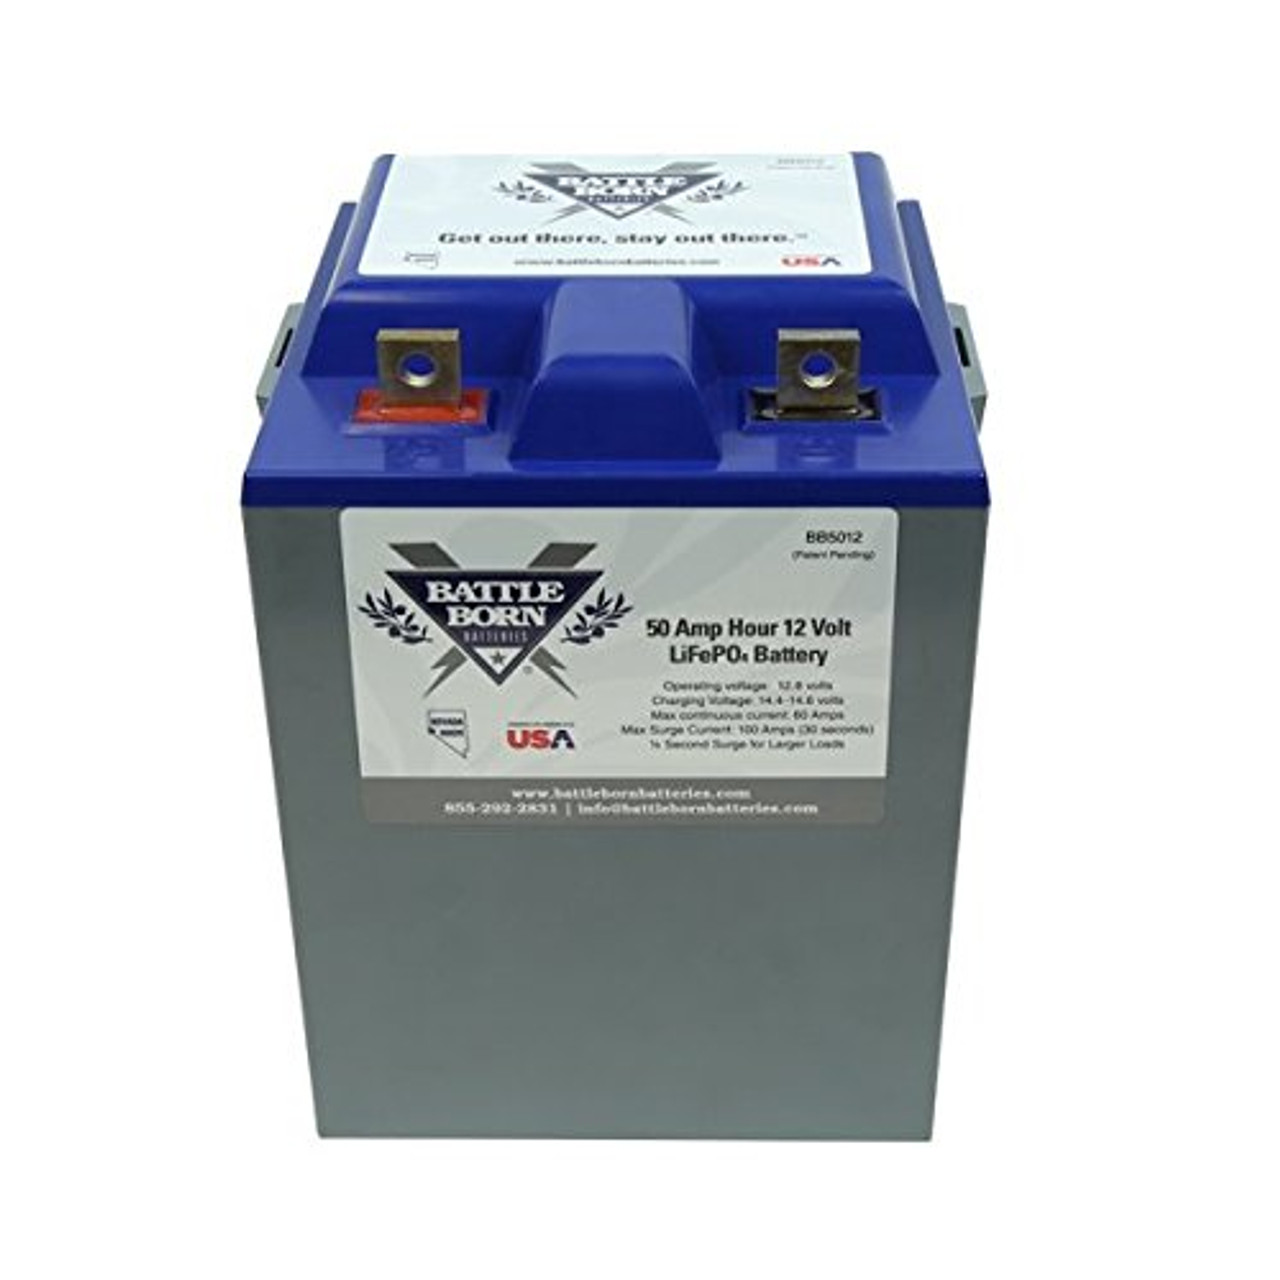 Battle Born LiFePO4 Deep Cycle Battery - 50Ah 12v with Built-in BMS - 3000-5000 Deep Cycle Rechargeable Battery - Perfect for RV/Camper, Marine, Overland/Van, and Off Grid Applications